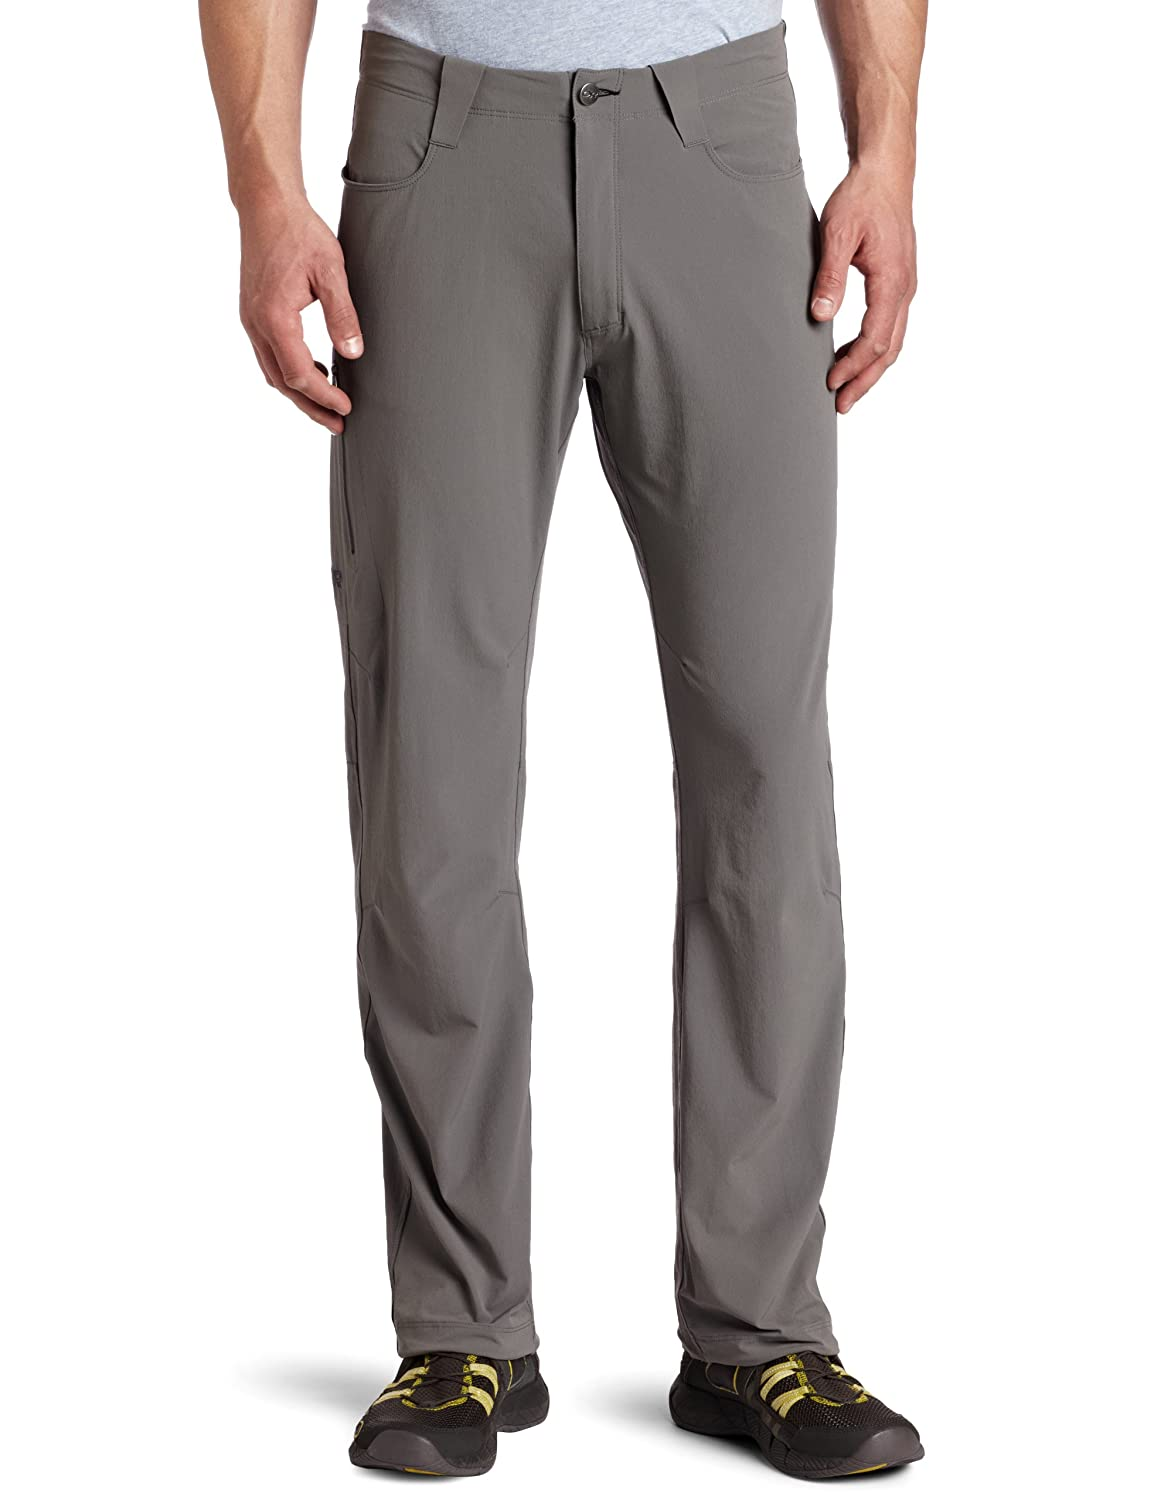 Outdoor Research Hosen Ferrosi Pant Pewter 32